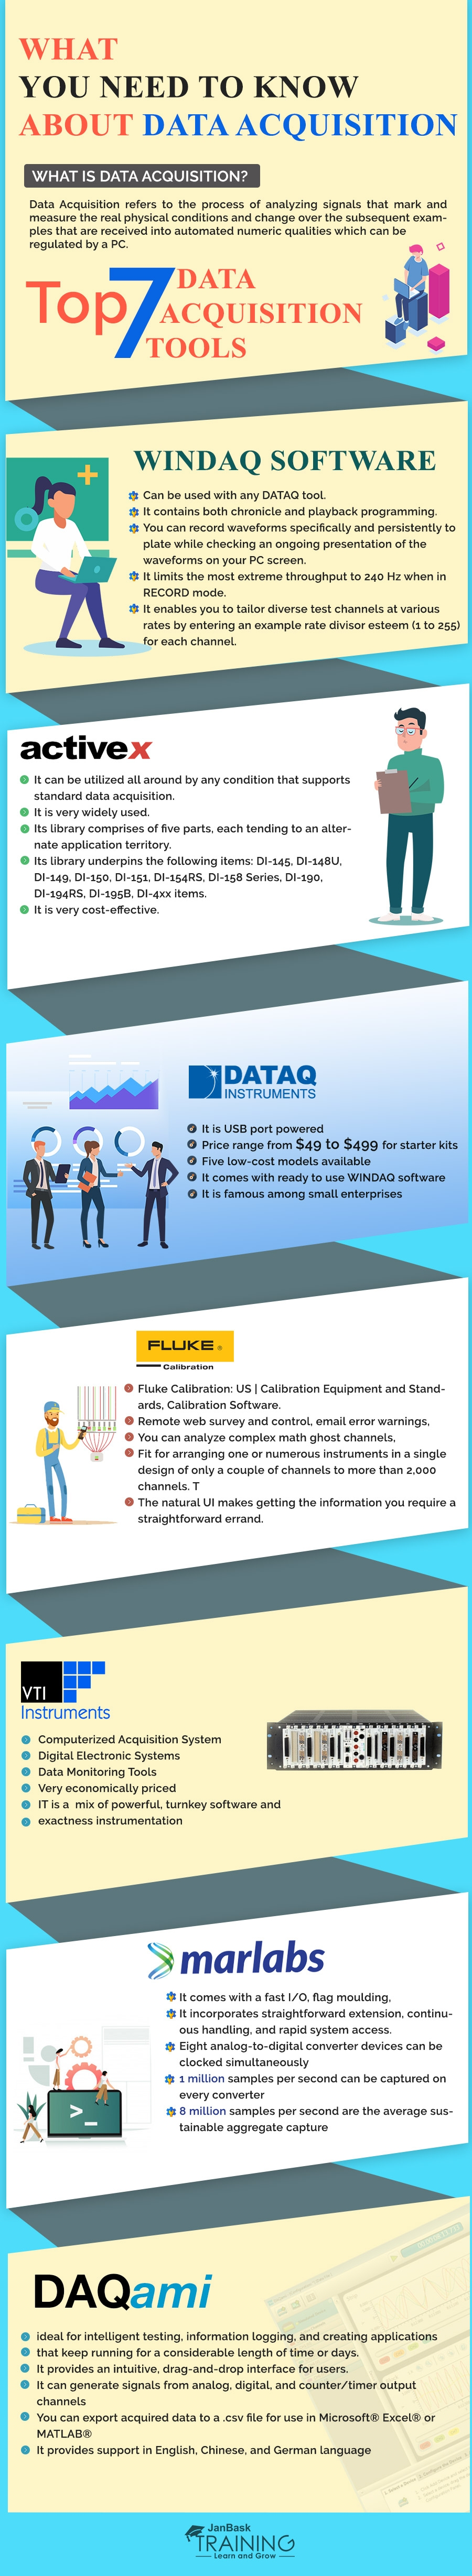 What is Data Acquisition? Top 10 Data Acquisition Tools & Components infographic